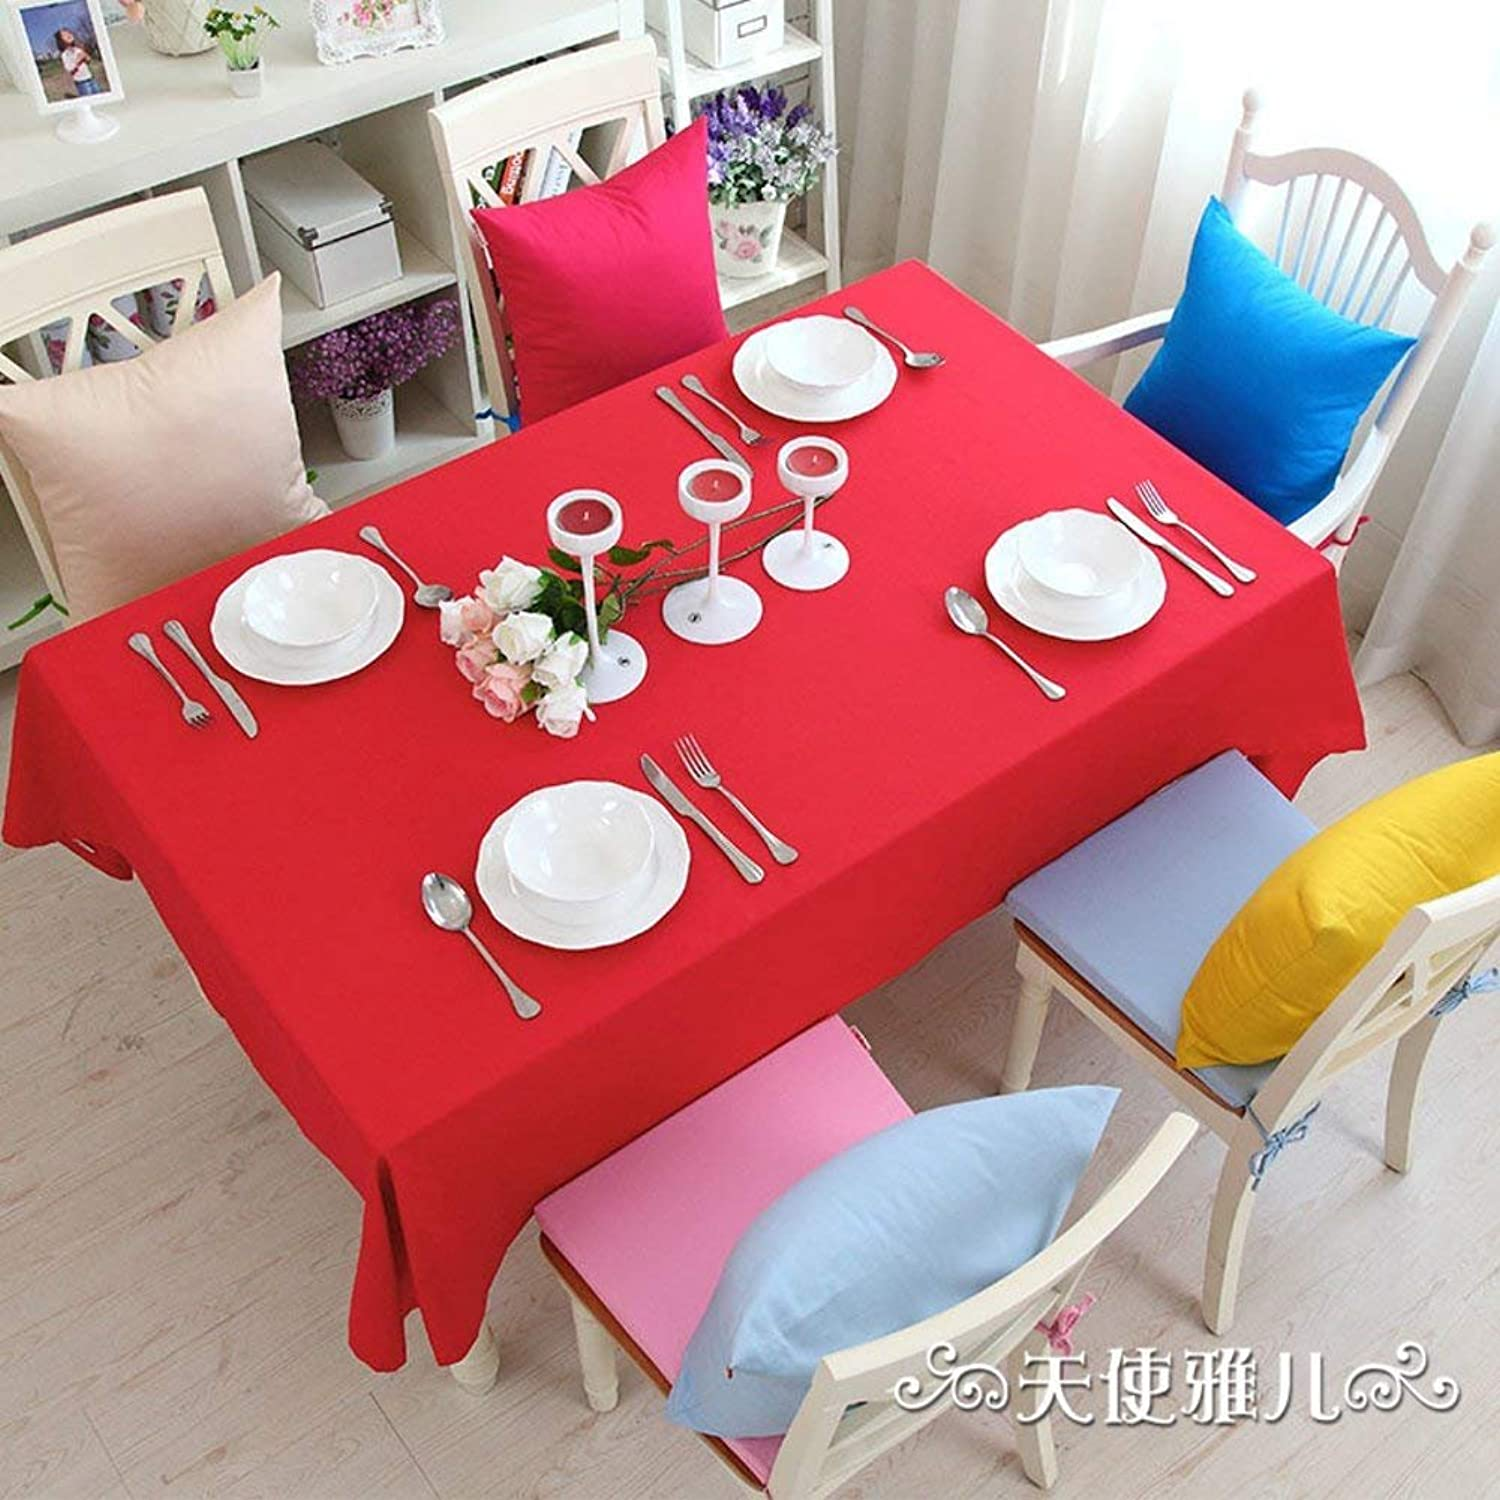 Garden Table on The Ground of The Fabric Mode Low Table in Soft Cotton Candy colord Simple pad-I 90x90cm (35x35cm)